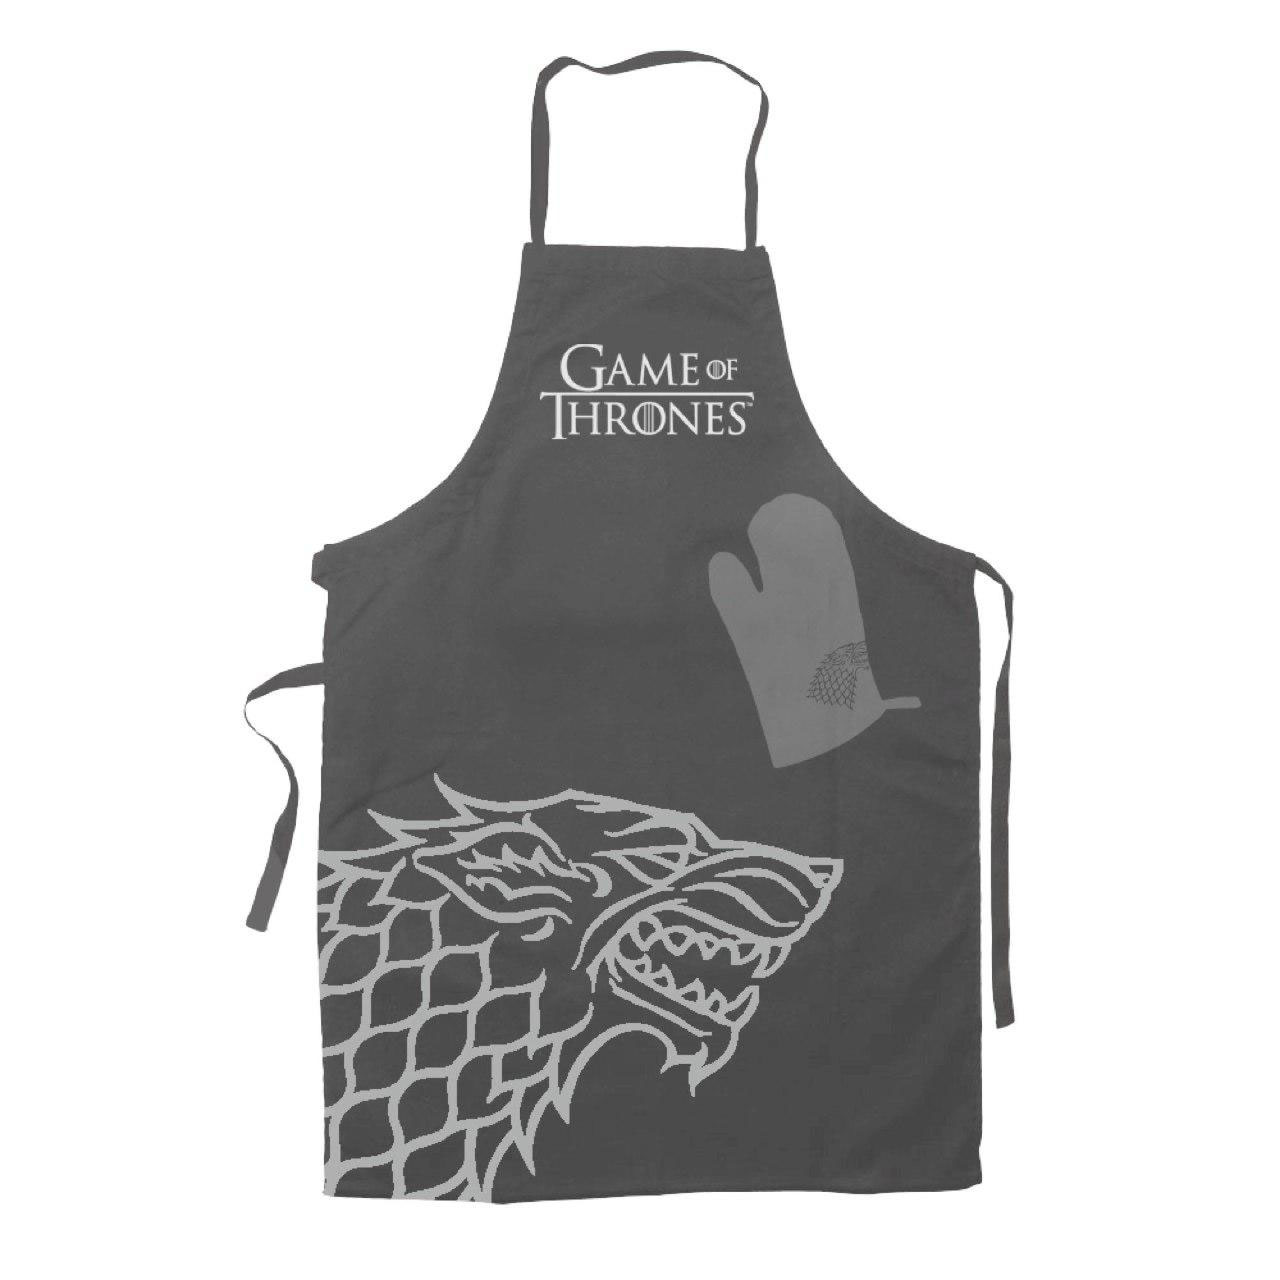 Game of Thrones cooking apron with oven mitt Stark